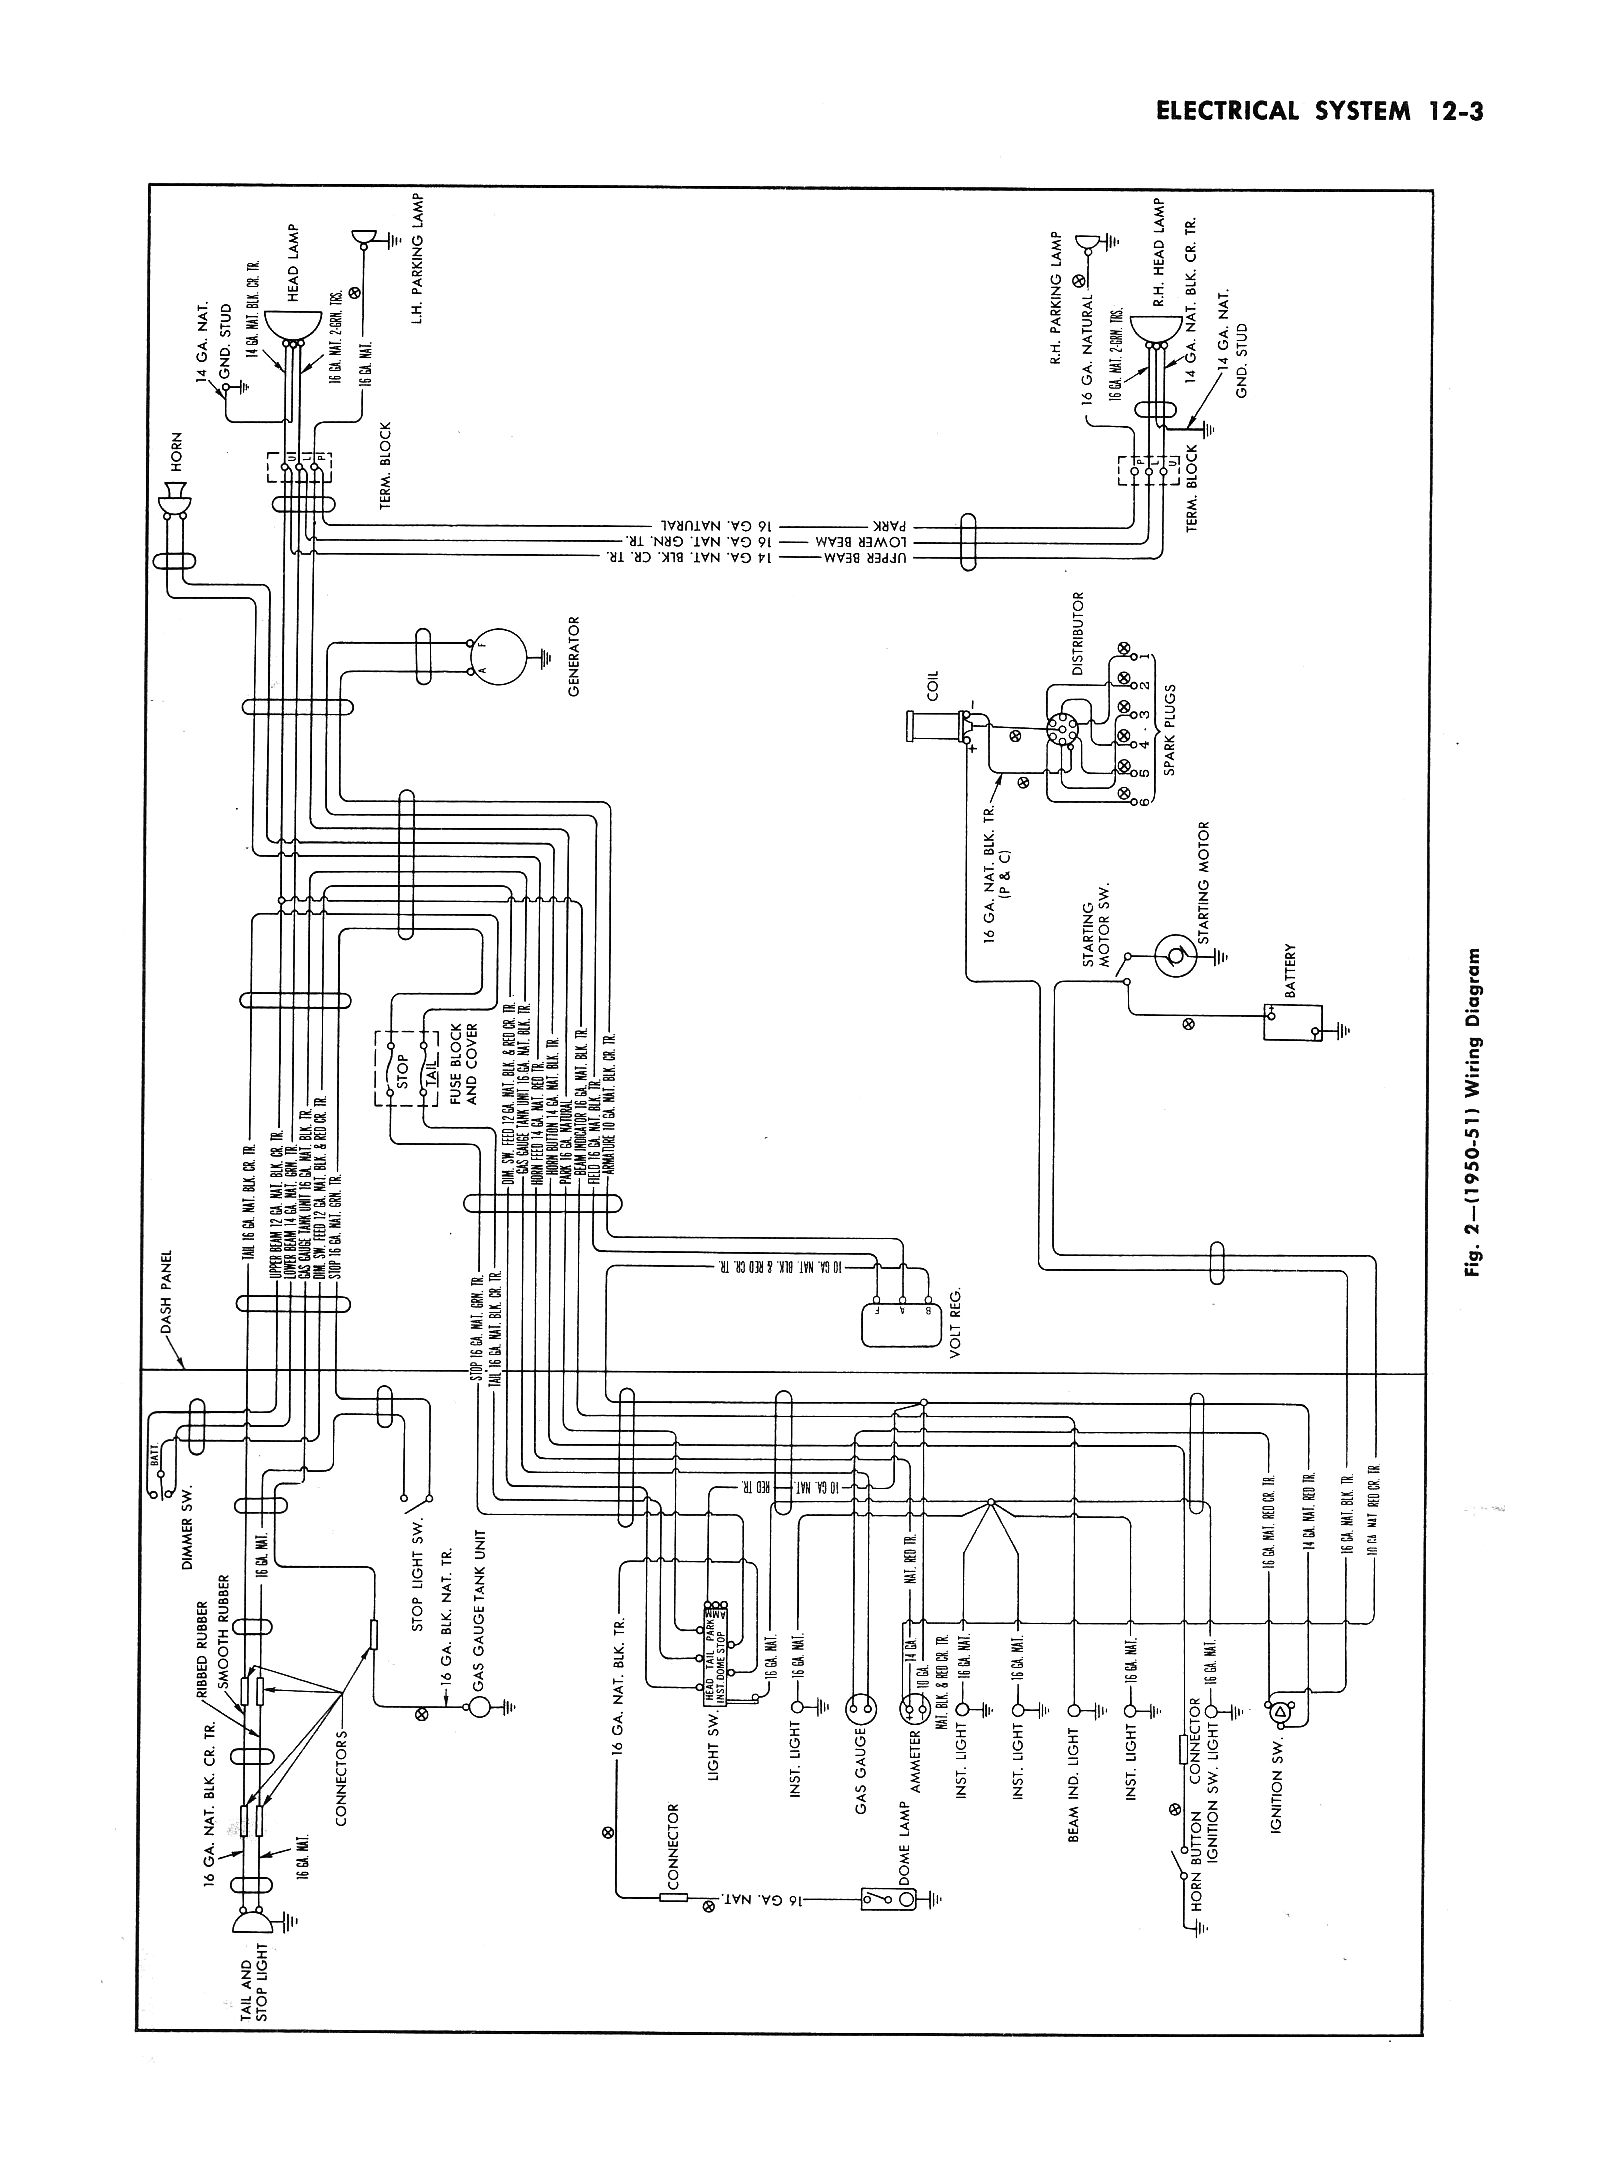 1972 chevy ignition switch wiring diagram best wiring library